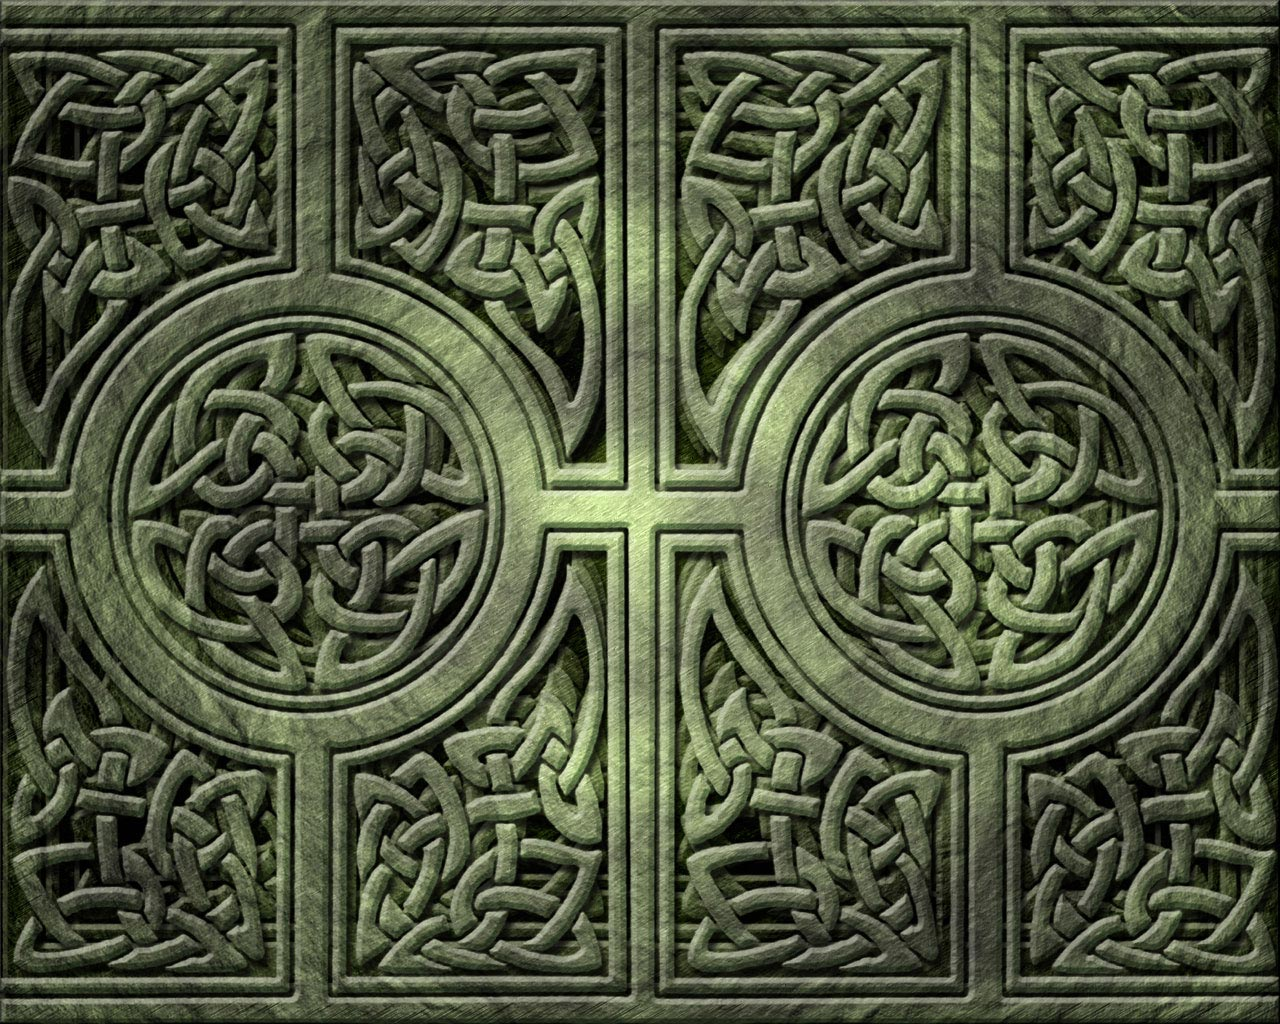 Celtic Cross Background Images amp Pictures   Becuo 1280x1024